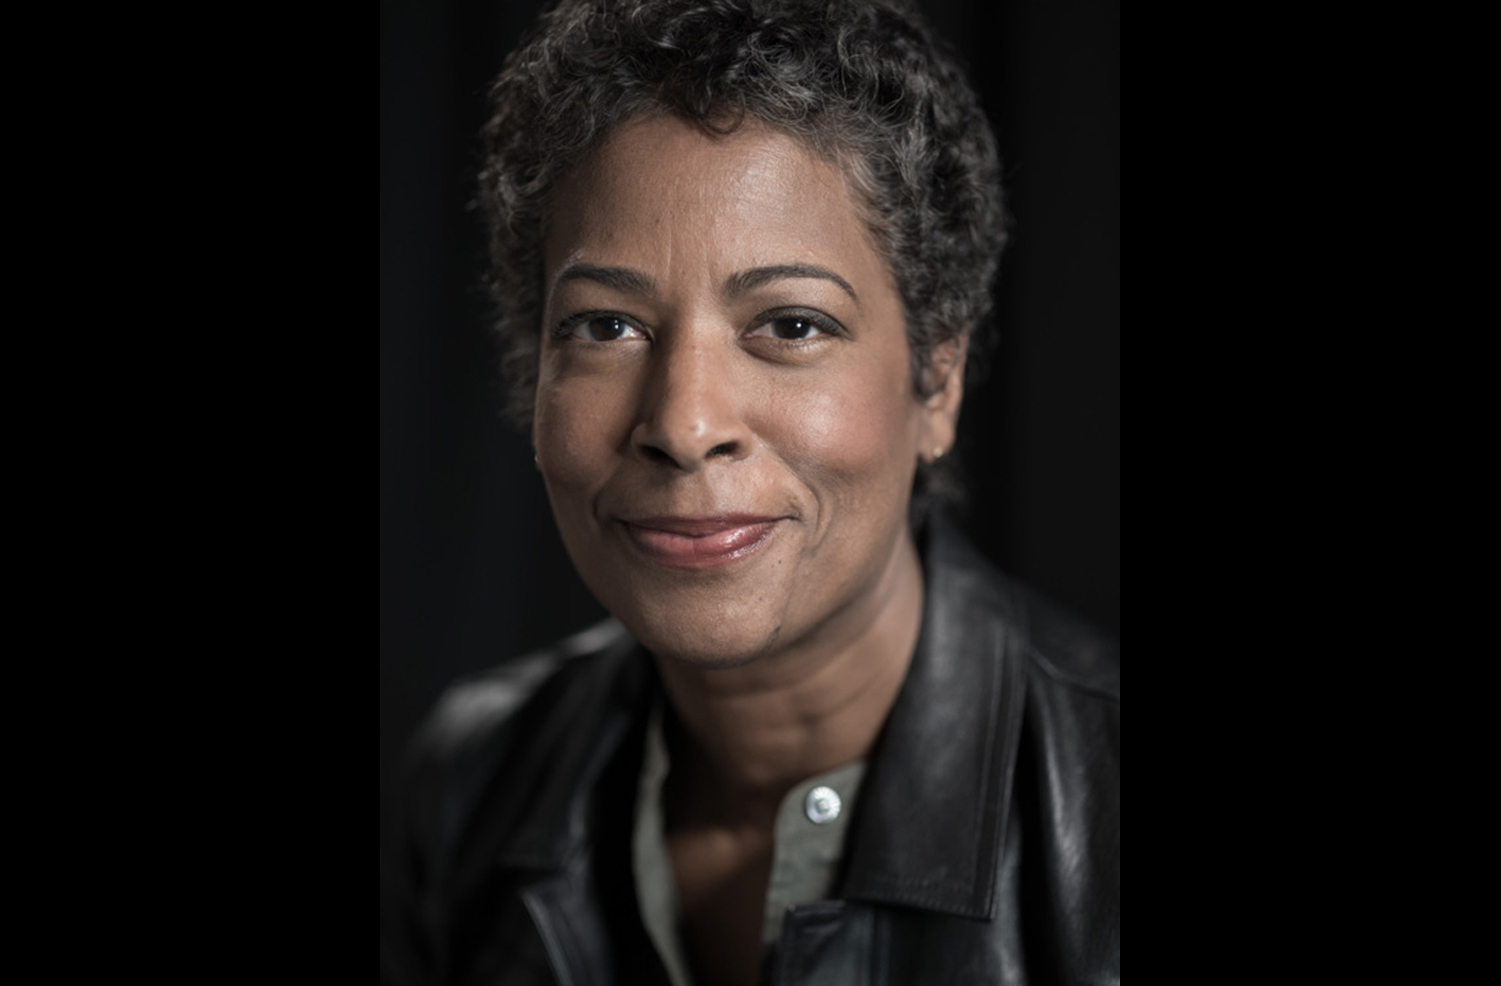 Dawn Porter '84, a filmmaker and founder of the production company Trilogy Films, will address the Class of 2021 on the first occasion that the graduating class will be together in a single location since March of 2020, due to the Coronavirus pandemic.